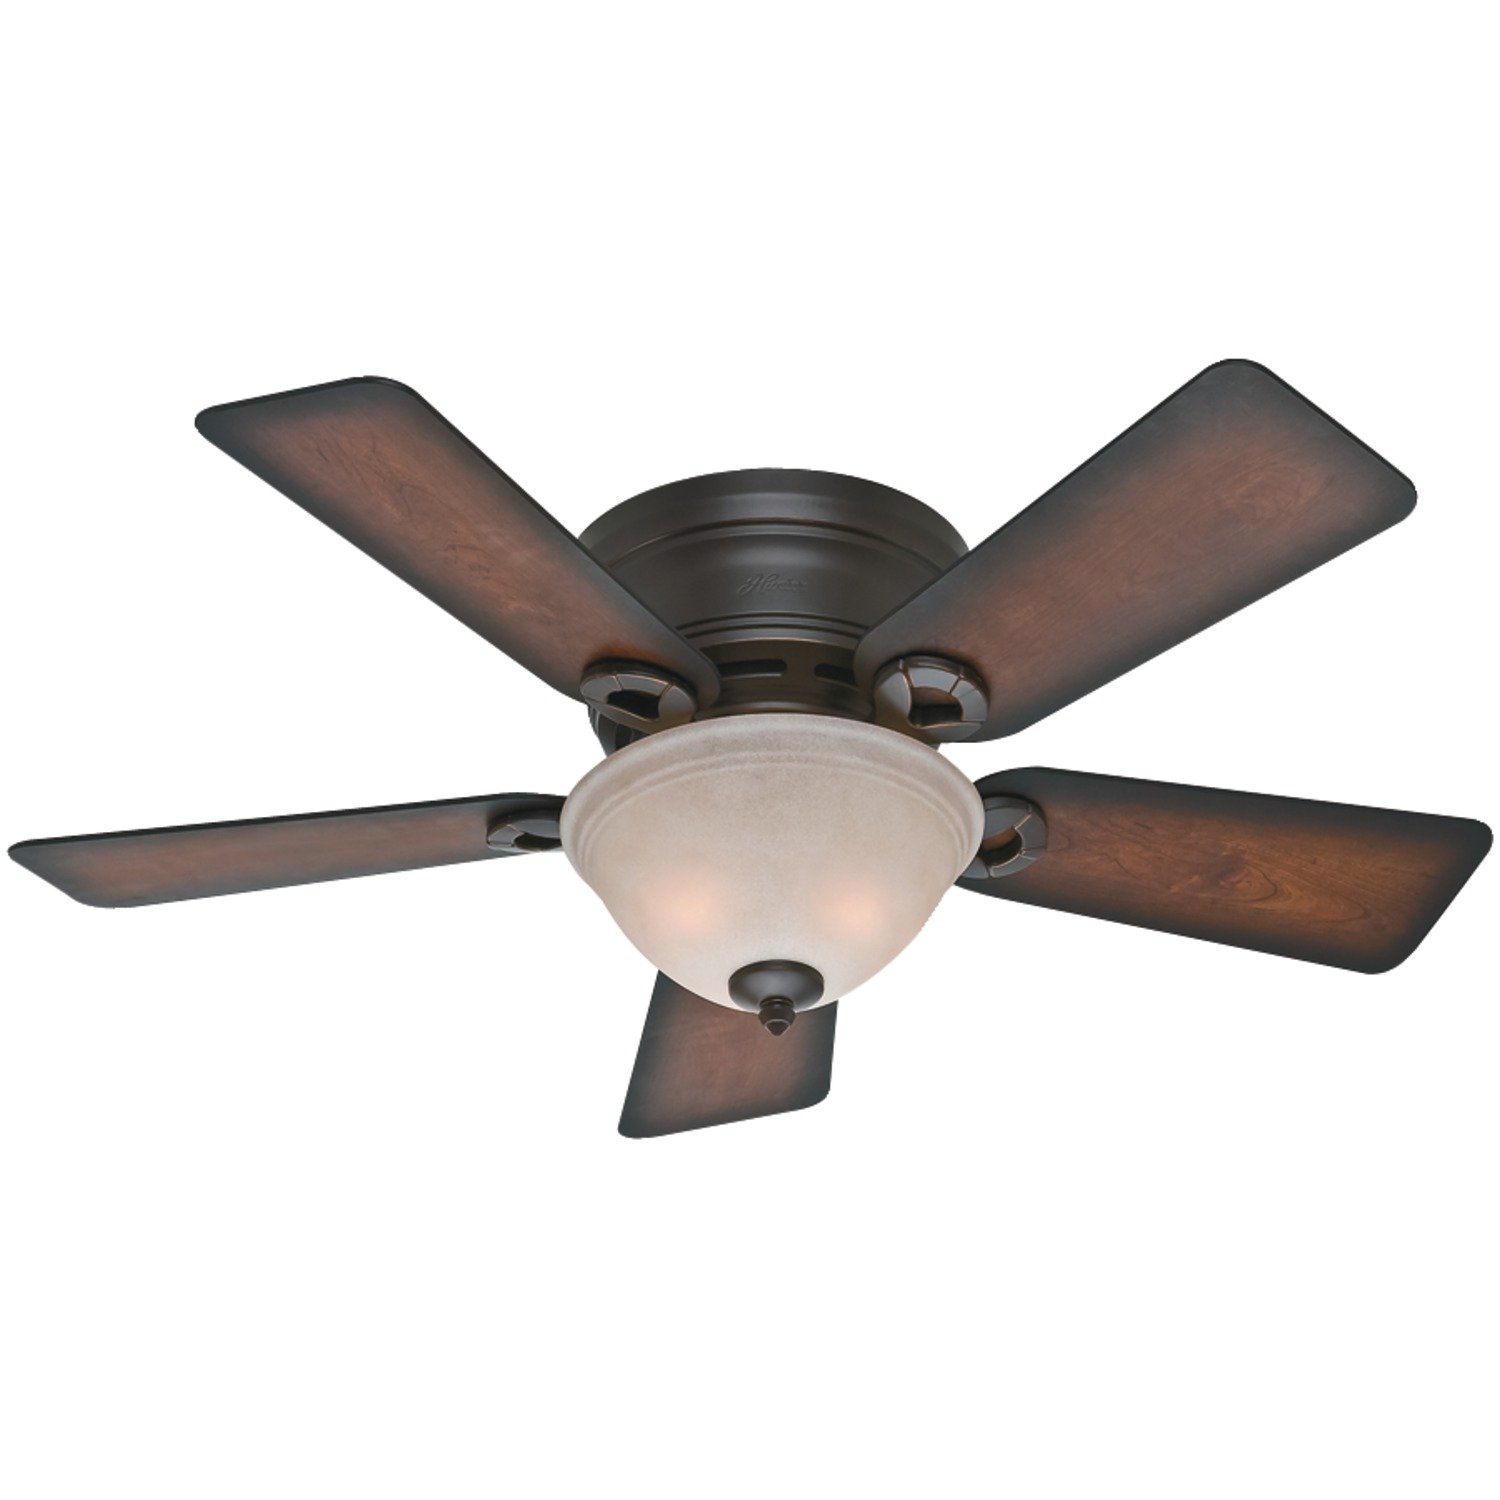 Hunter 51023 Conroy 42-Inch Onyx Bengal Ceiling Fan with Five Burnished Mahogany Blades and a Light Kit by Hunter Fan Company (Image #1)